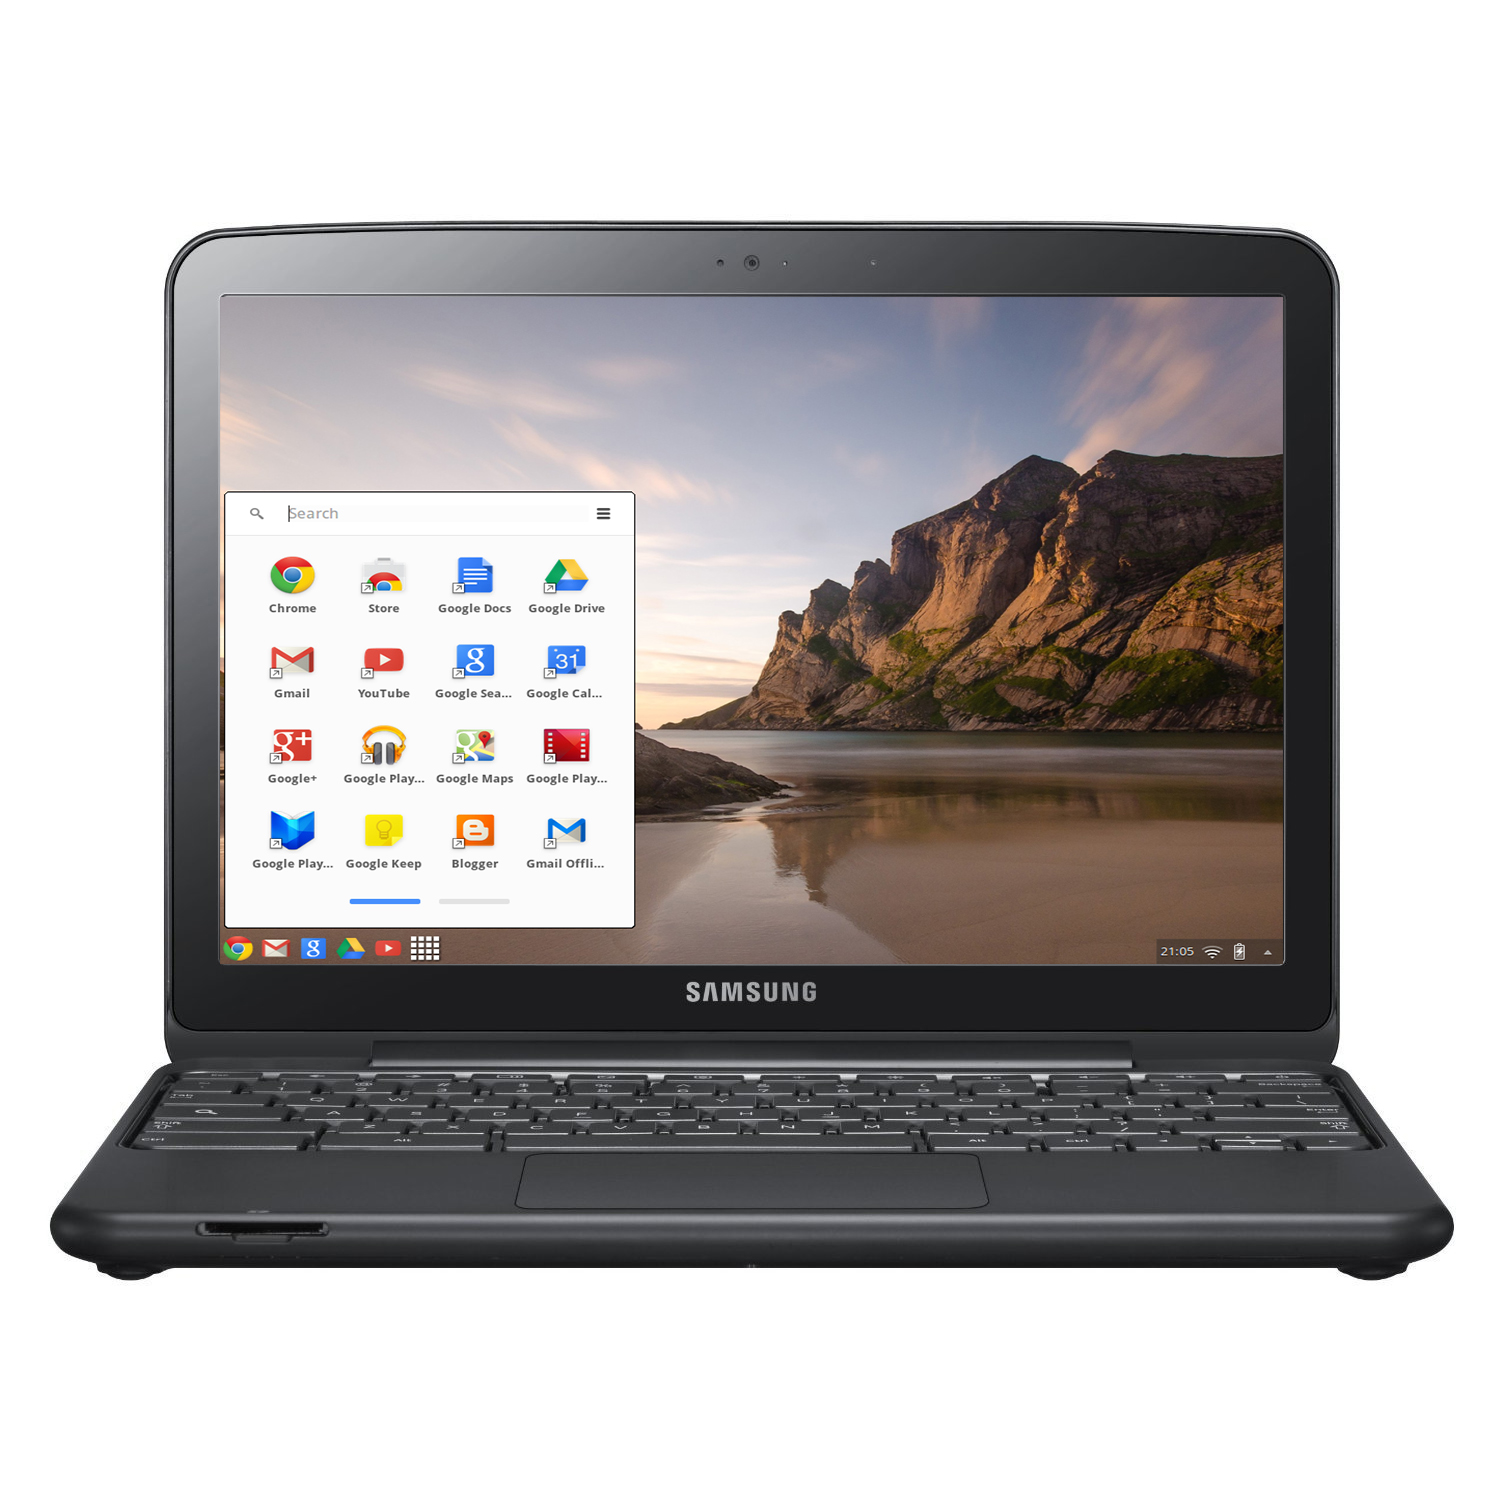 "Refurbished Samsung XE500C21 12"" LED Chromebook Laptop Intel Dual-Core 1.66GHz 2GB 16GB SSD"